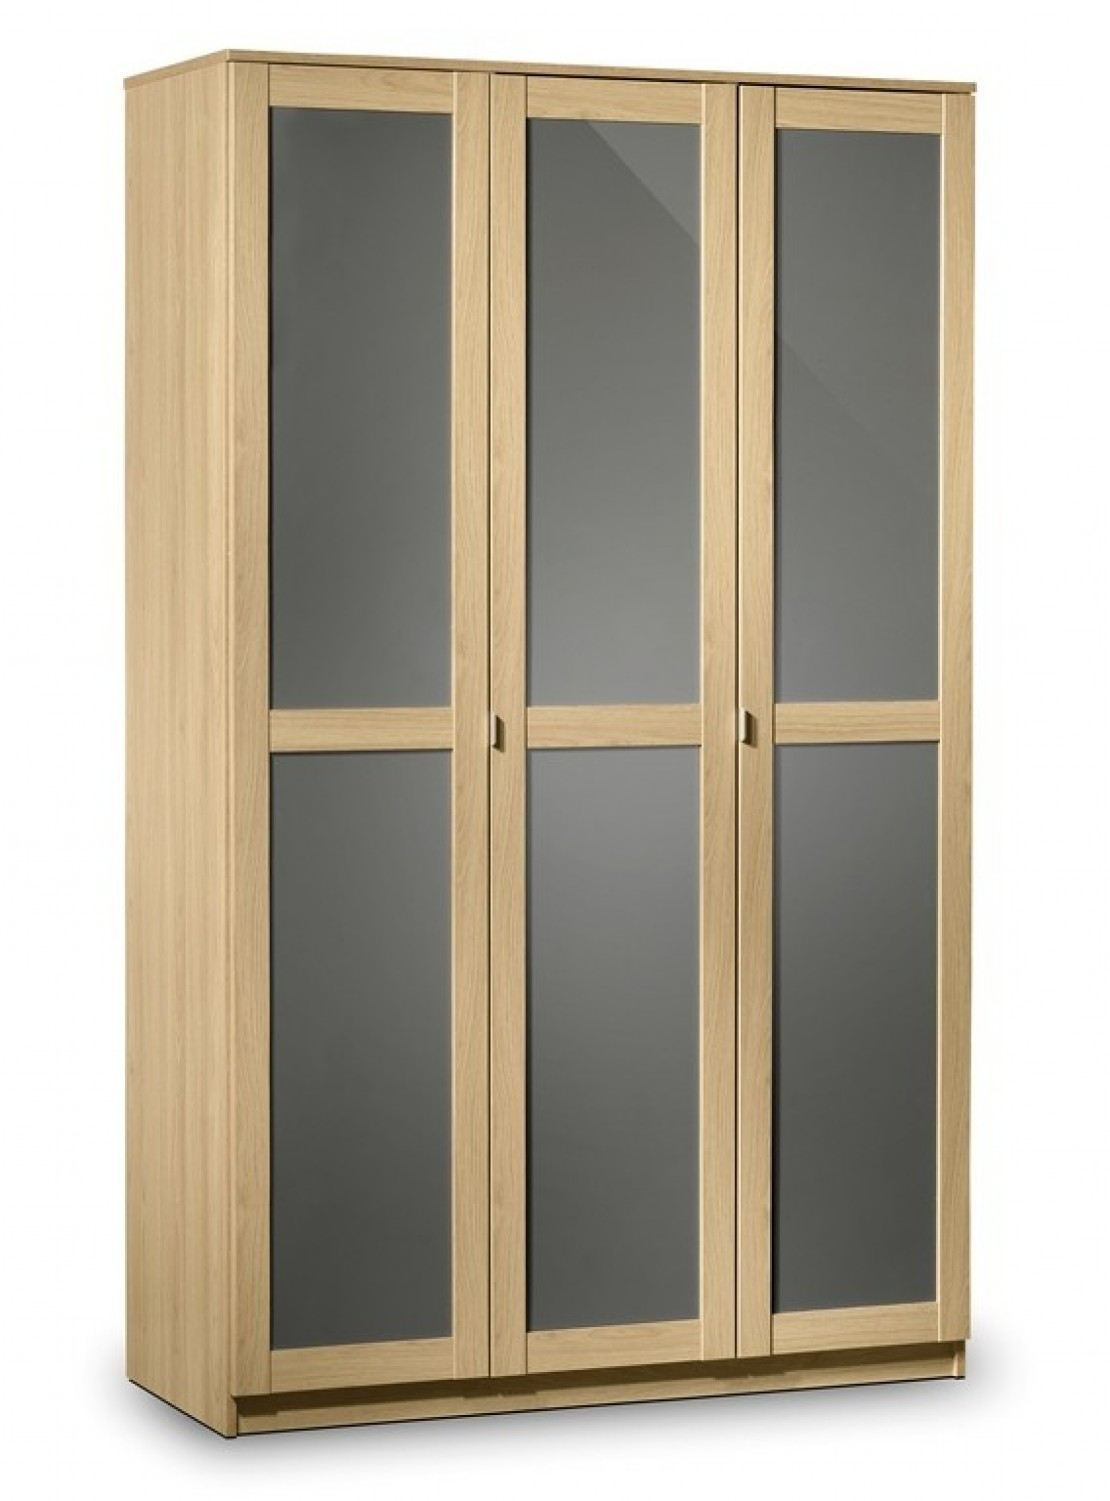 /_images/product-photos/julian-bowen-strada-3-door-wardrobe-a.jpg